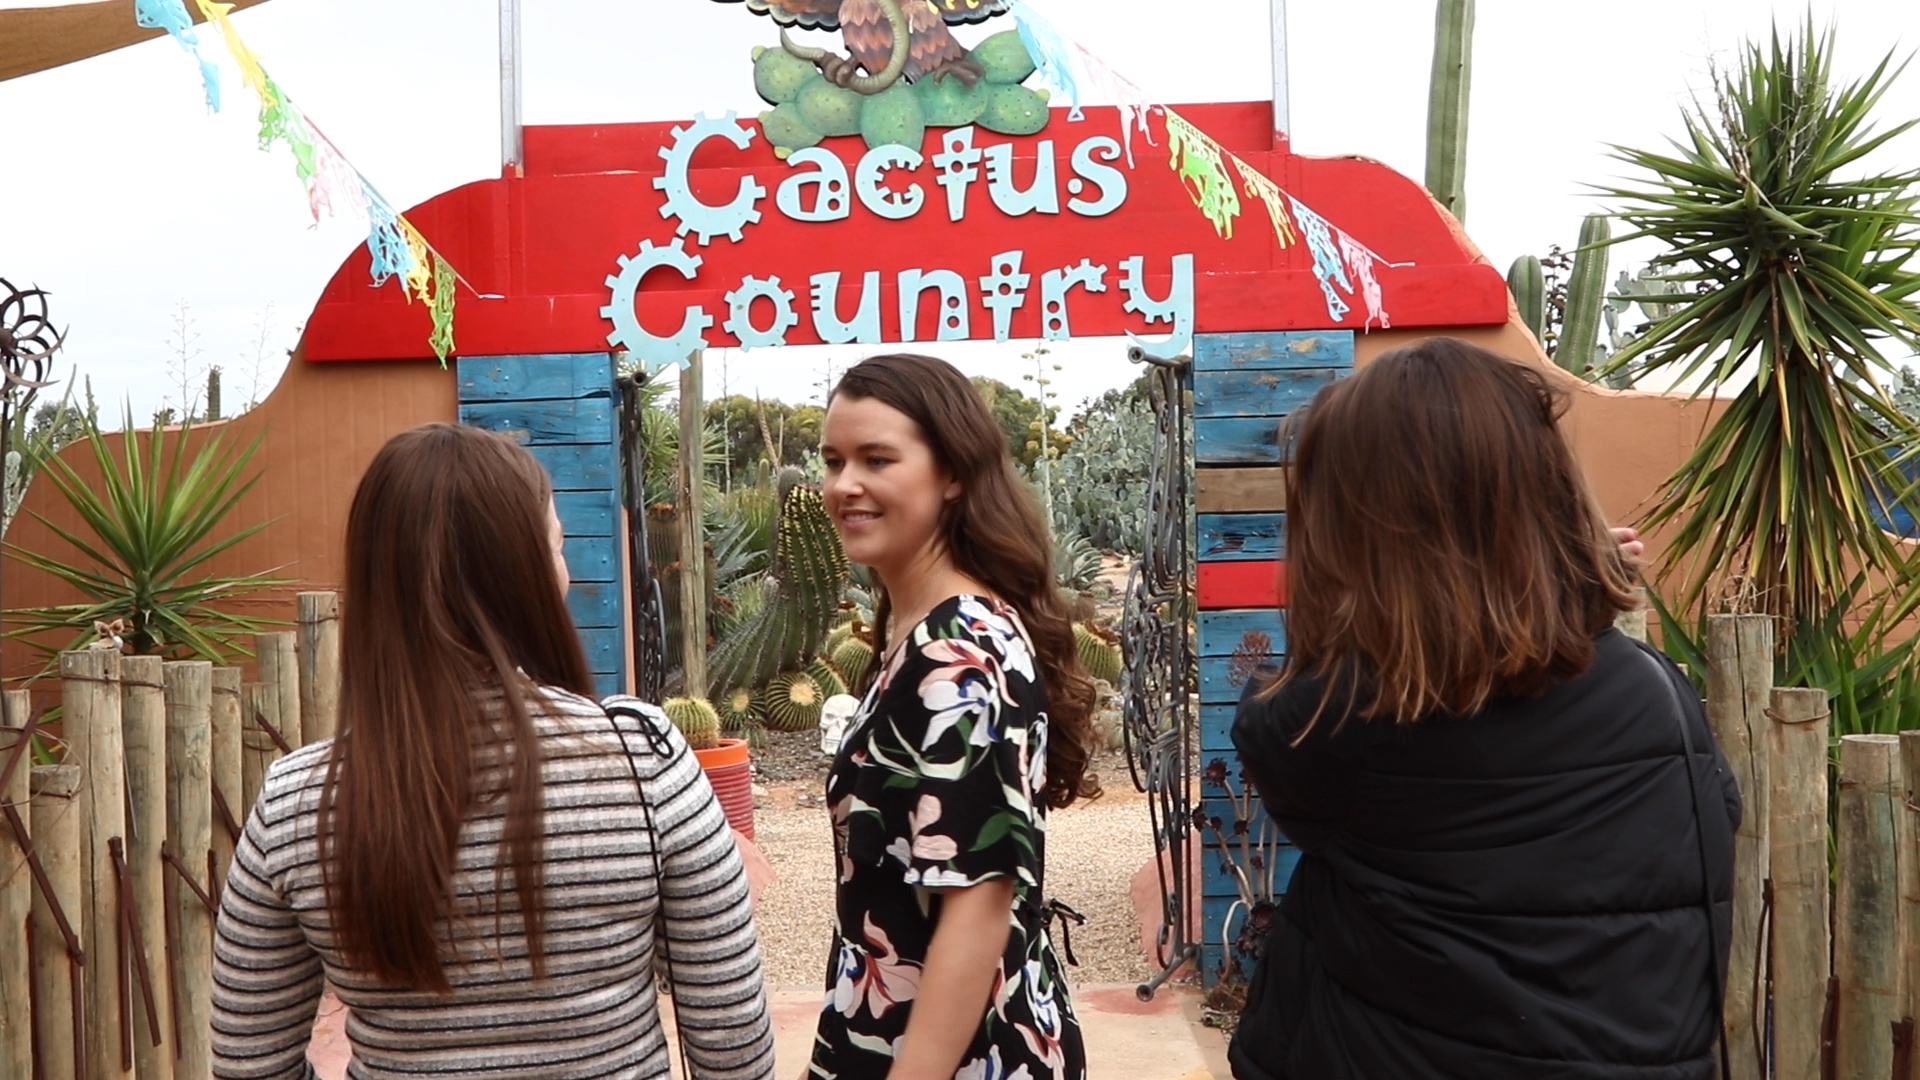 We Tried Cactus Food At Australia's Biggest Cactus Garden - Cactus food!? YUM!